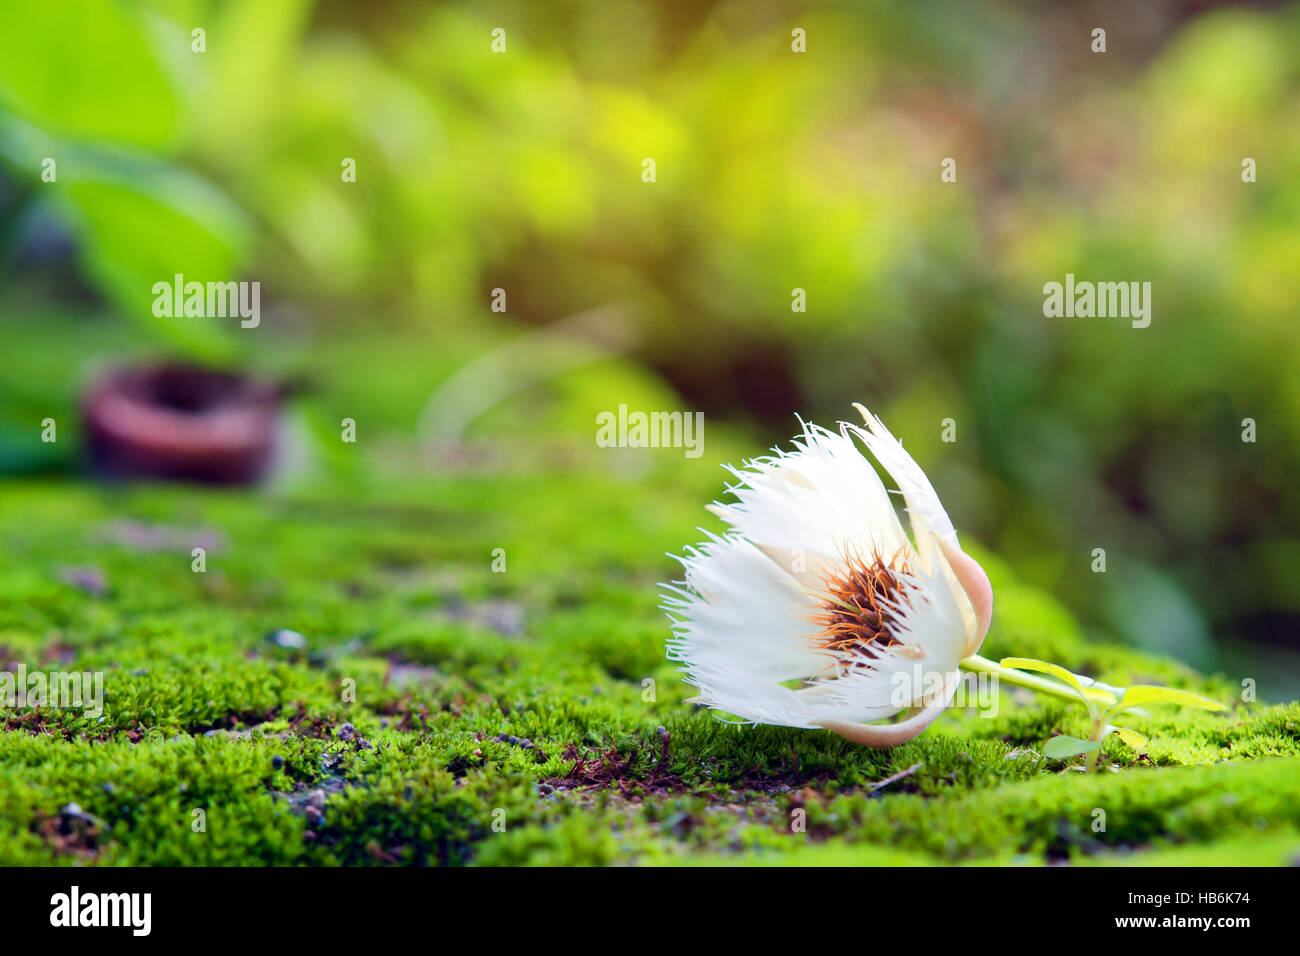 Elaeocarpus hainanensis or Elaeocarpus grandifloras flower on moss background (Also called as Elaeocarpaceae, Oxalidales, - Stock Image